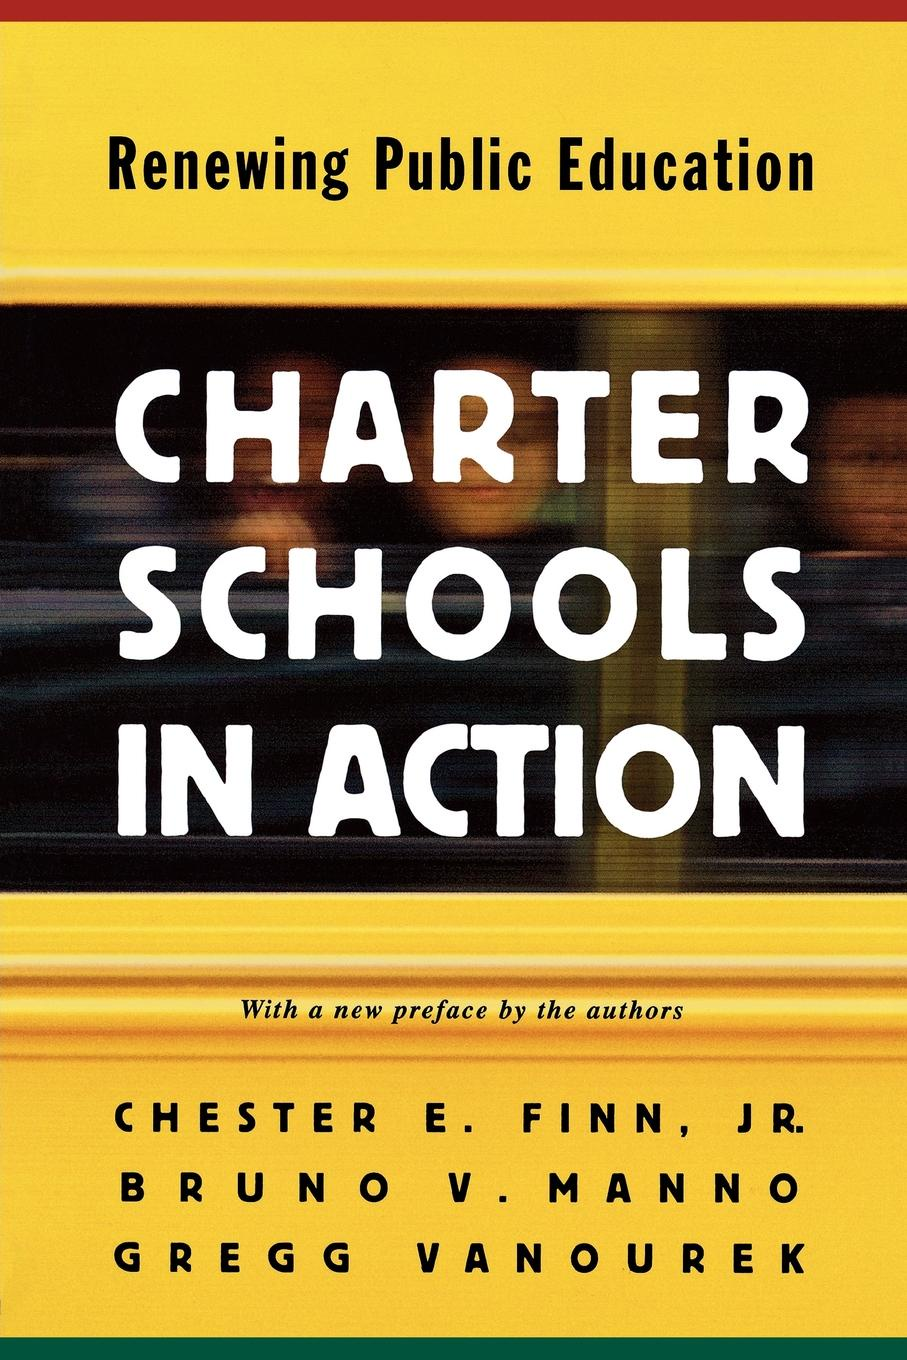 Chester E. Finn Jr., Bruno V. Manno, Gregg Vanourek Charter Schools in Action. Renewing Public Education janet d mulvey bruce s cooper arthur t maloney blurring the lines charter public private and religious schools come together